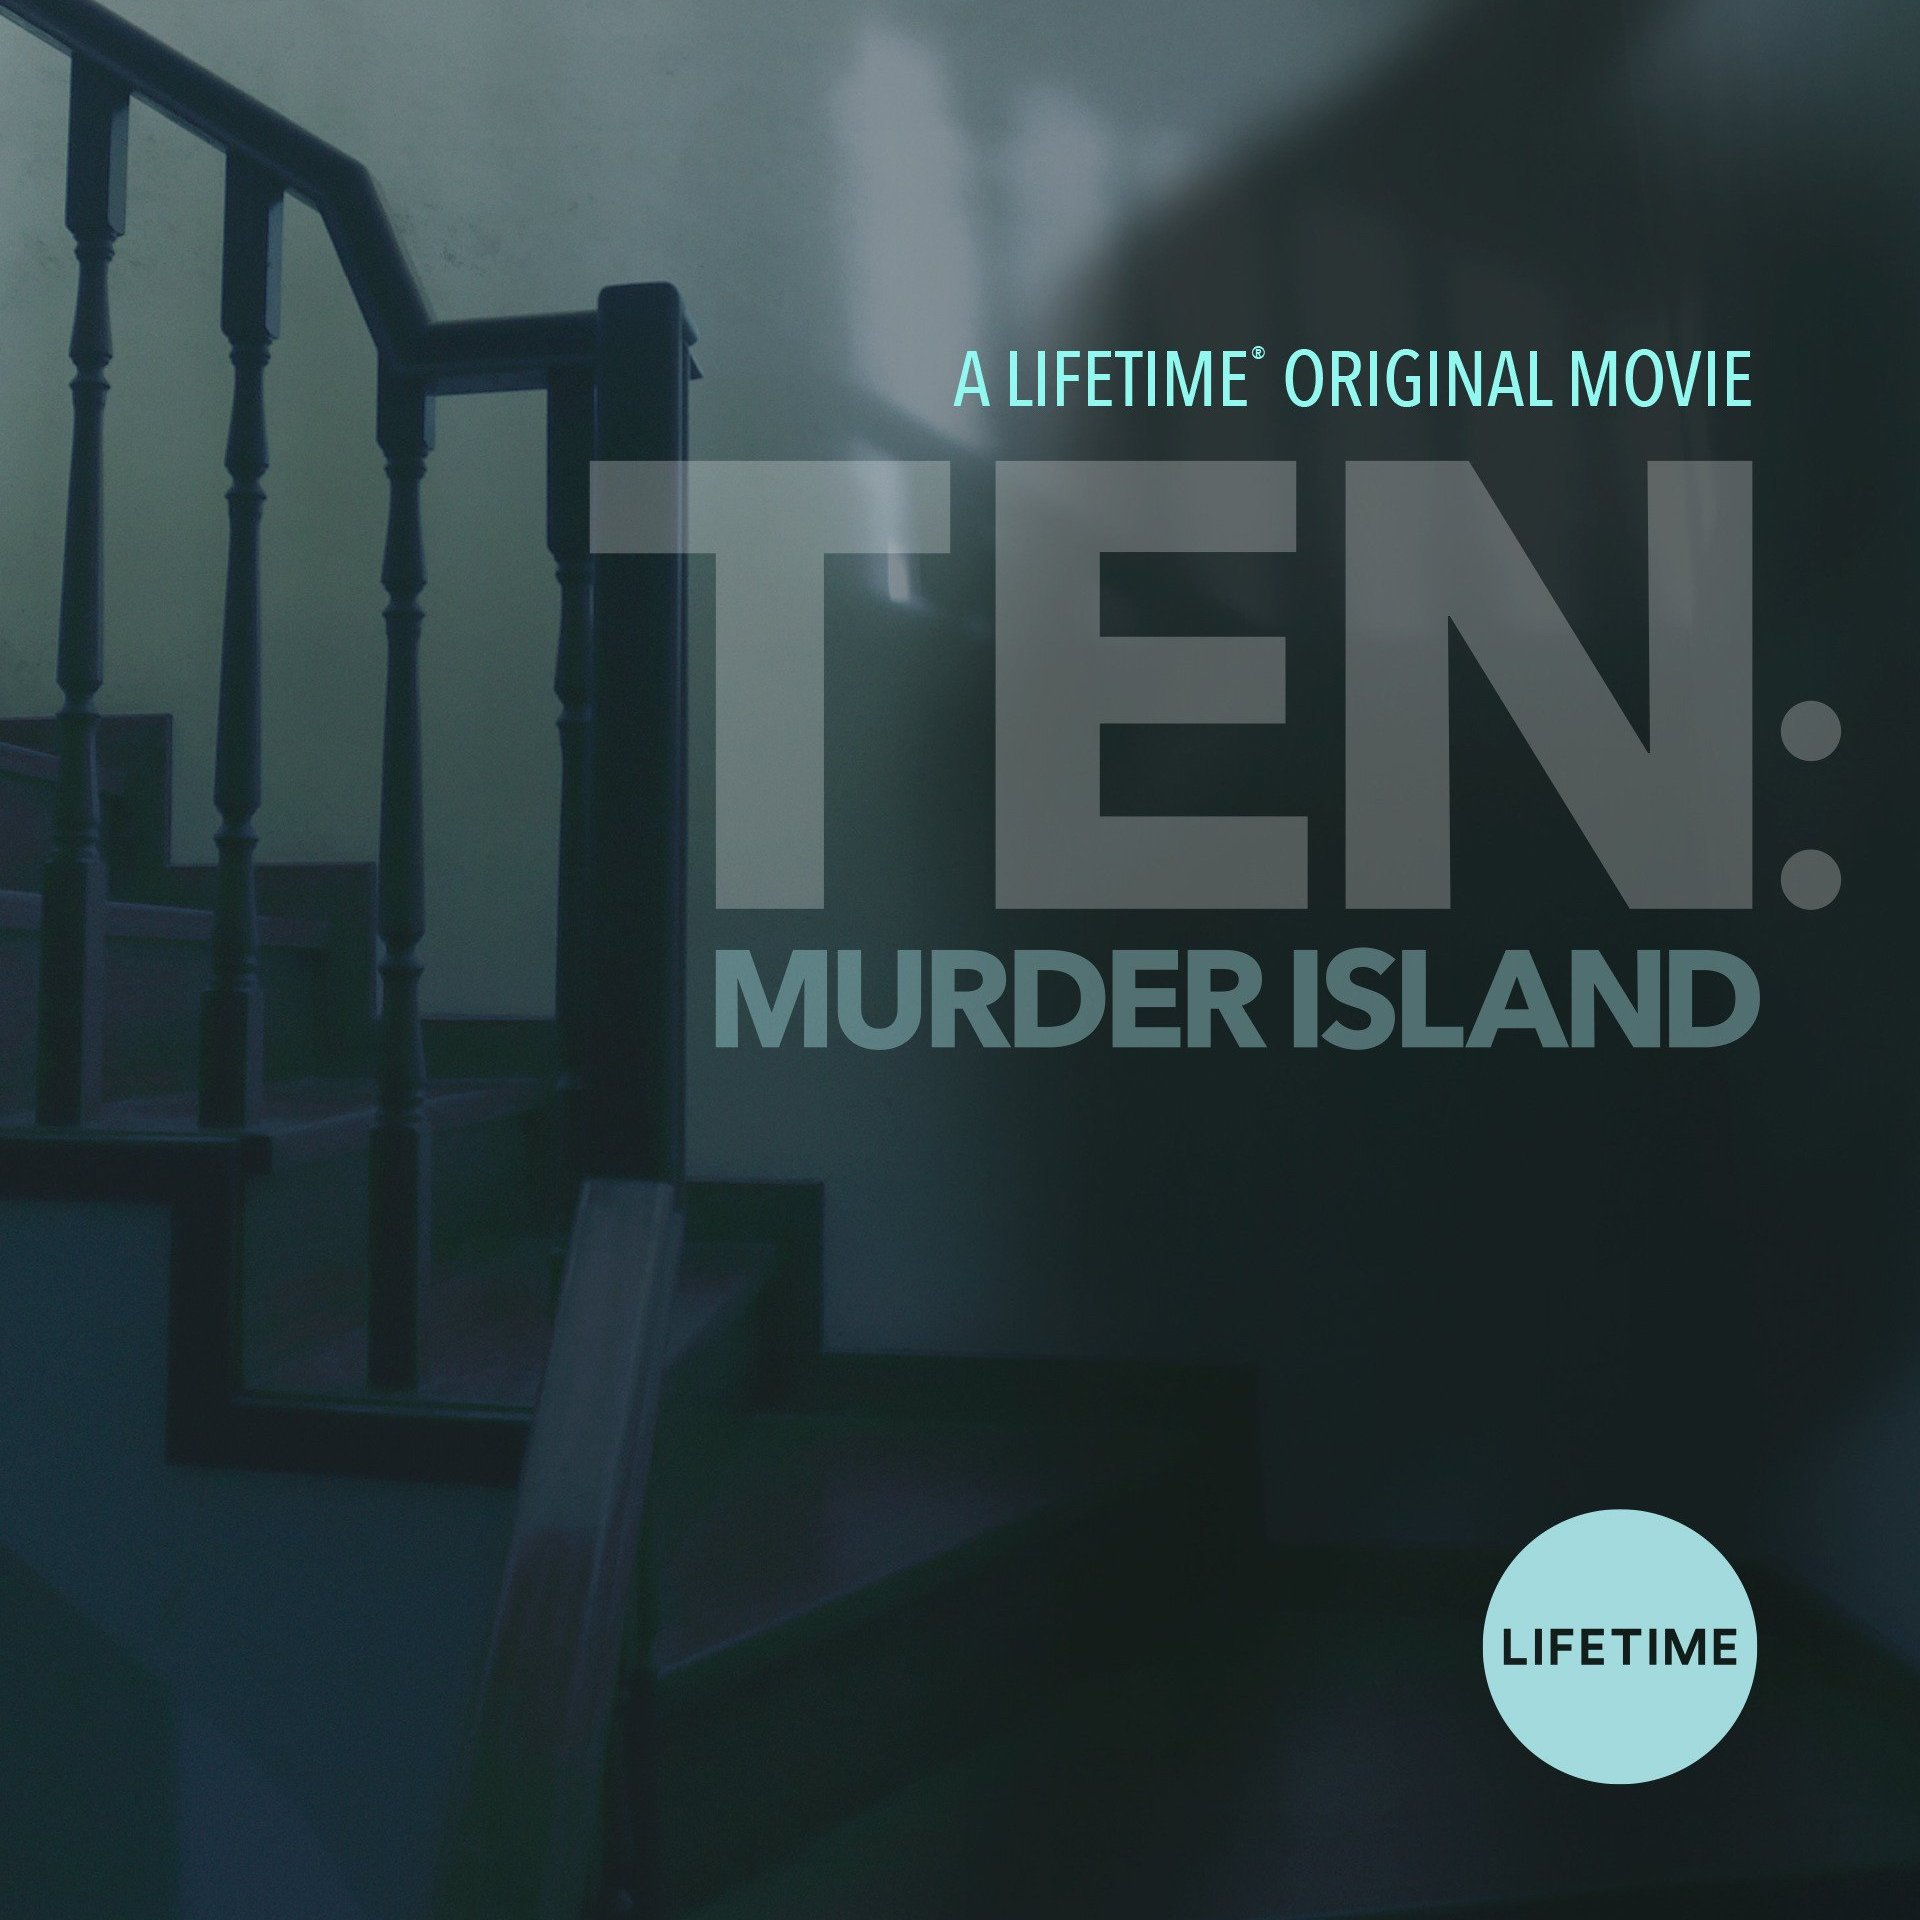 Official poster for Lifetime's Ten: Murder Island. Producer's Toolbox provided music licensing for the film.